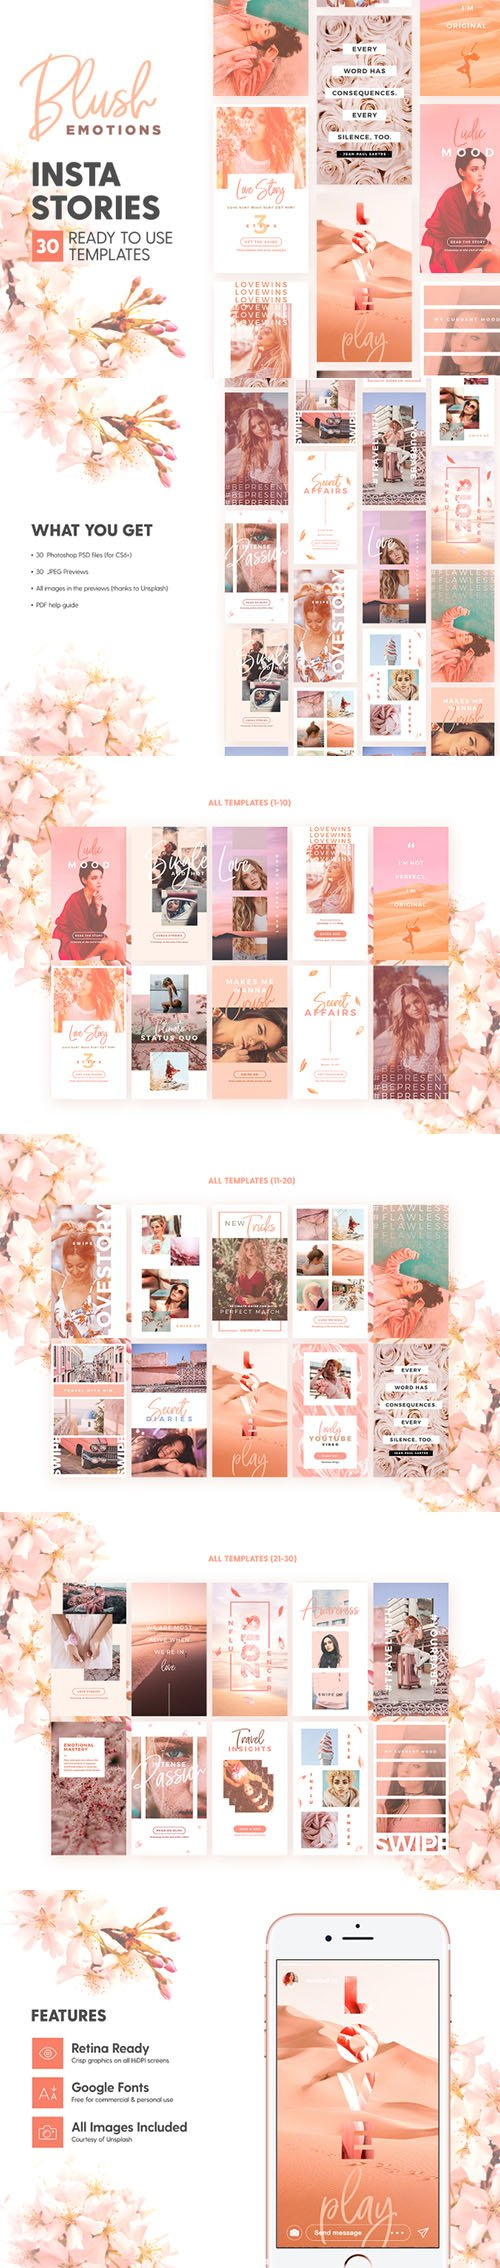 Blush Emotions Insta Stories - 30 Photoshop Templates for Lovely Instagram Stories